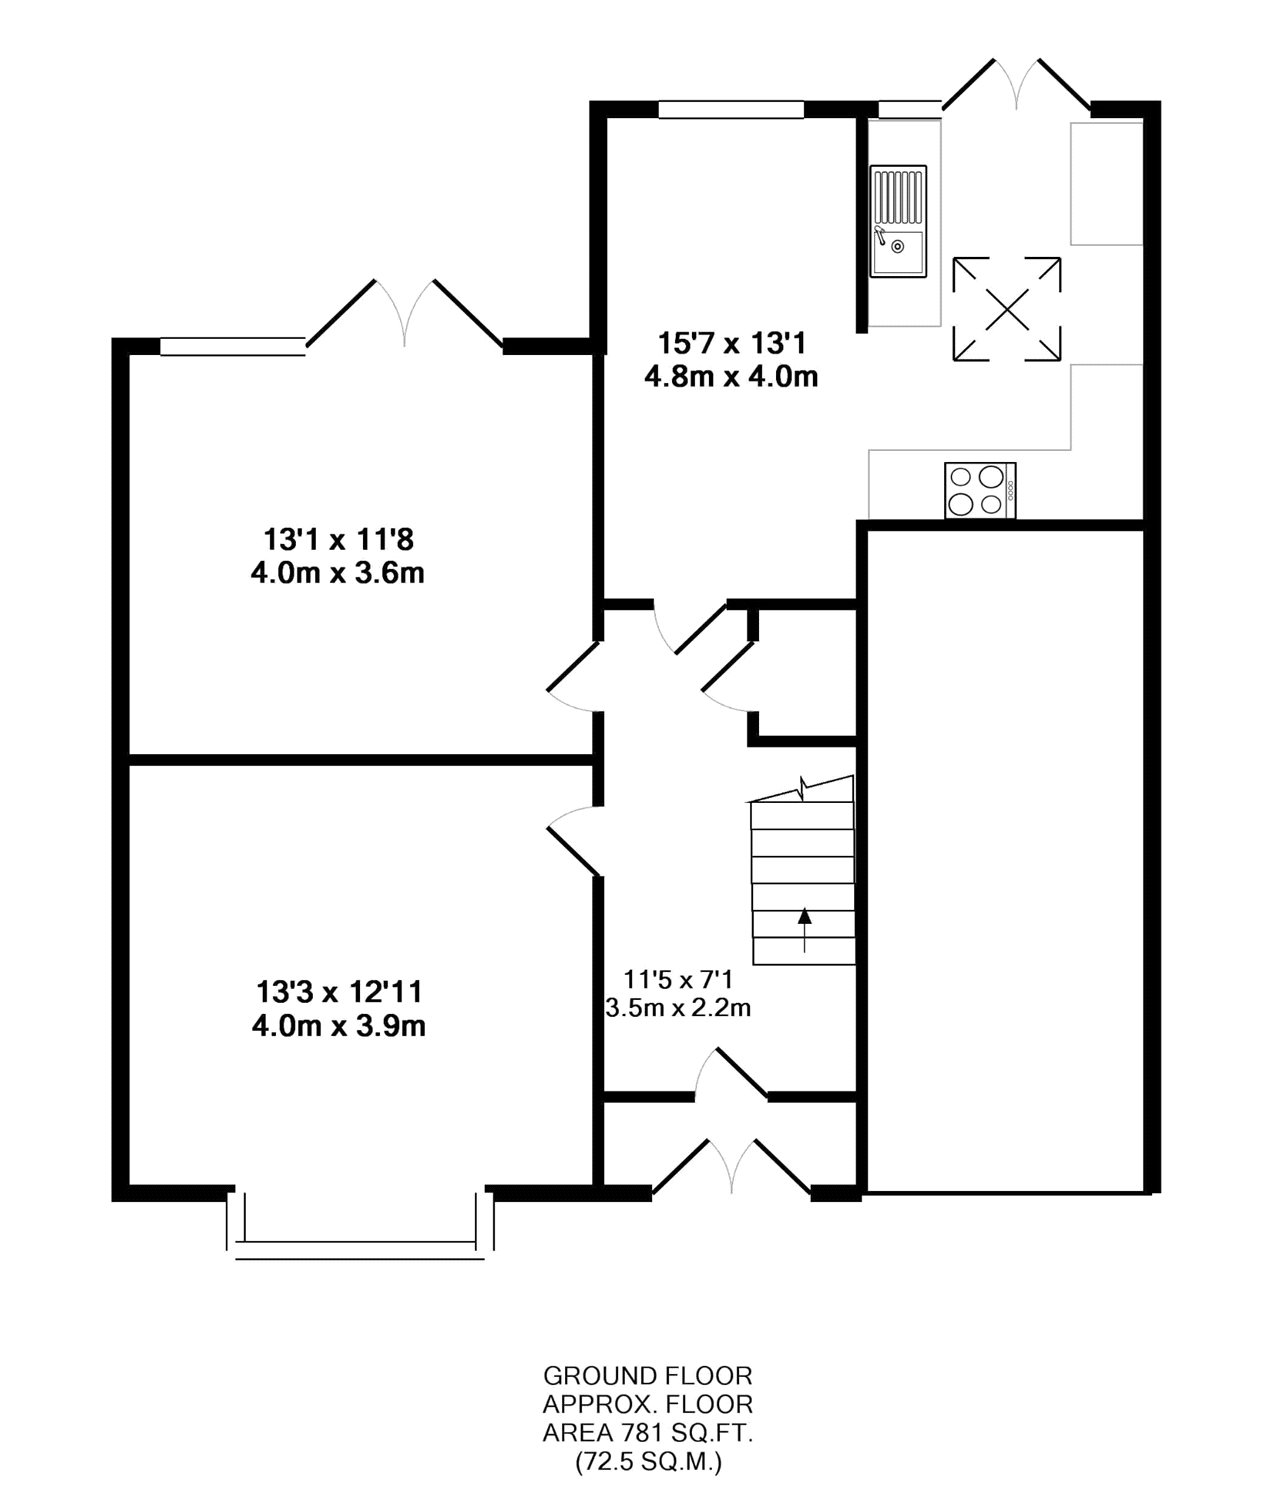 Floorplan of 4 bedroom House for sale